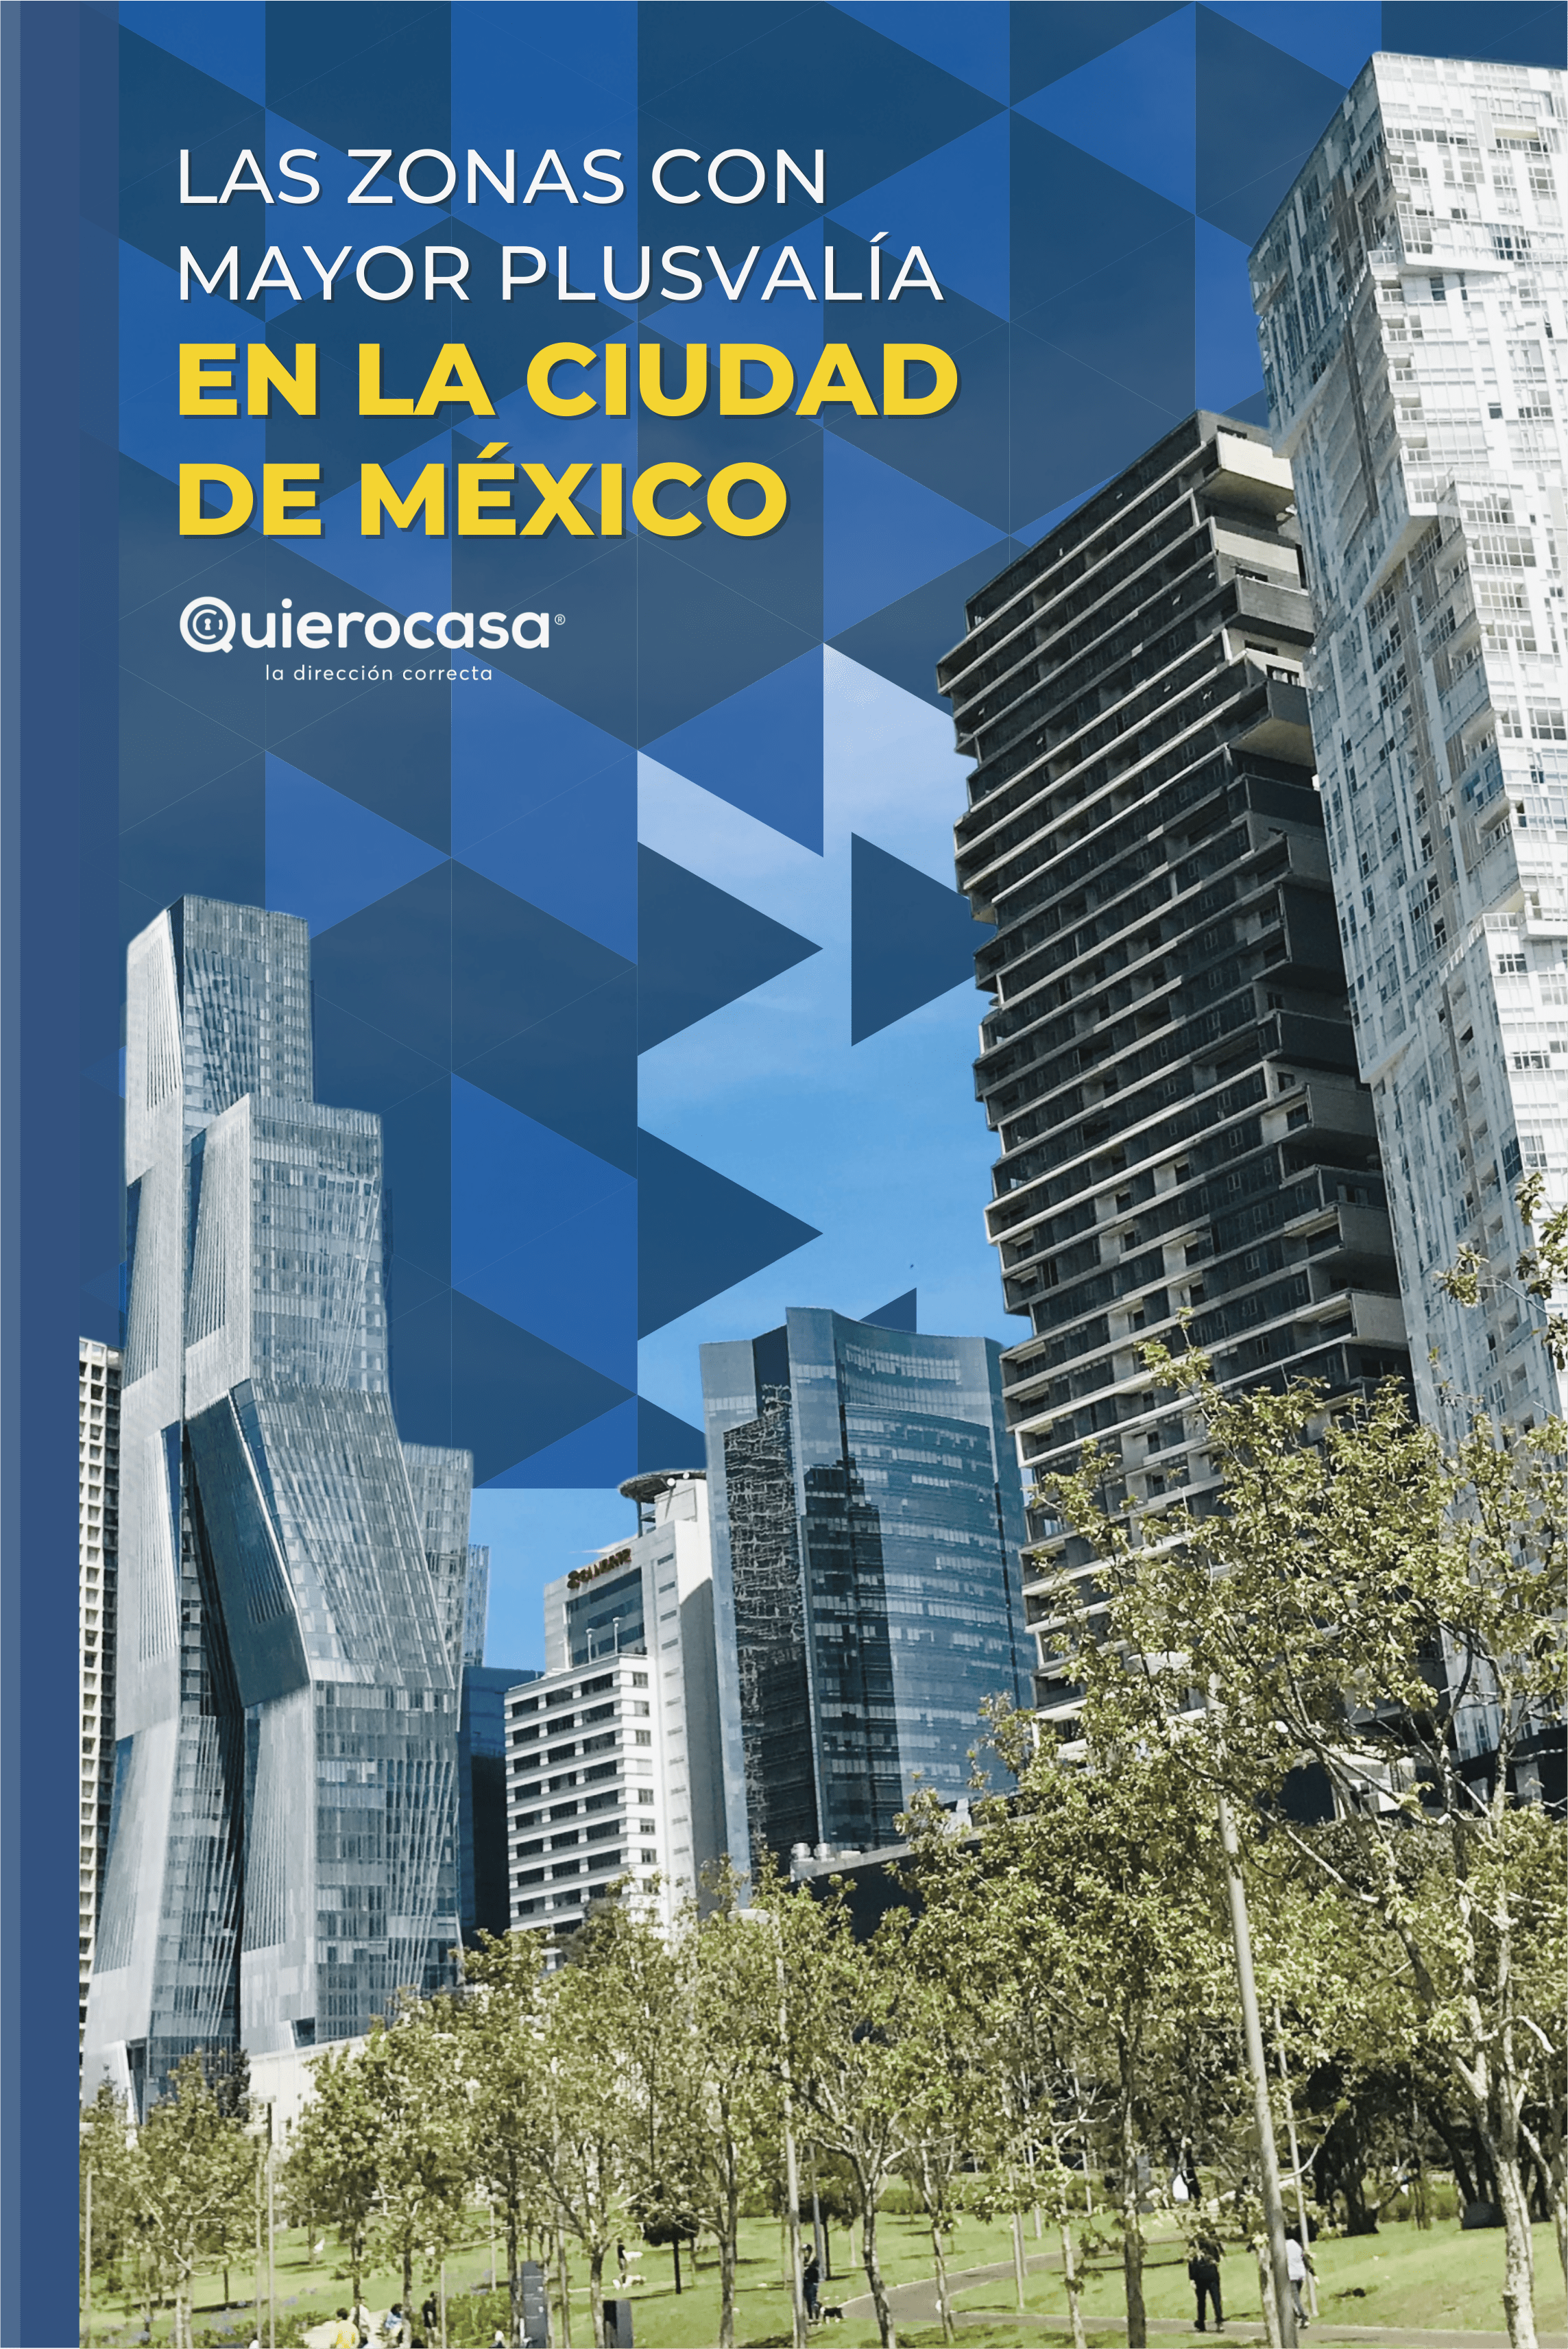 QC - Portada eBook - Zonas con Mayor Plusvalía - CDMX (3)-min